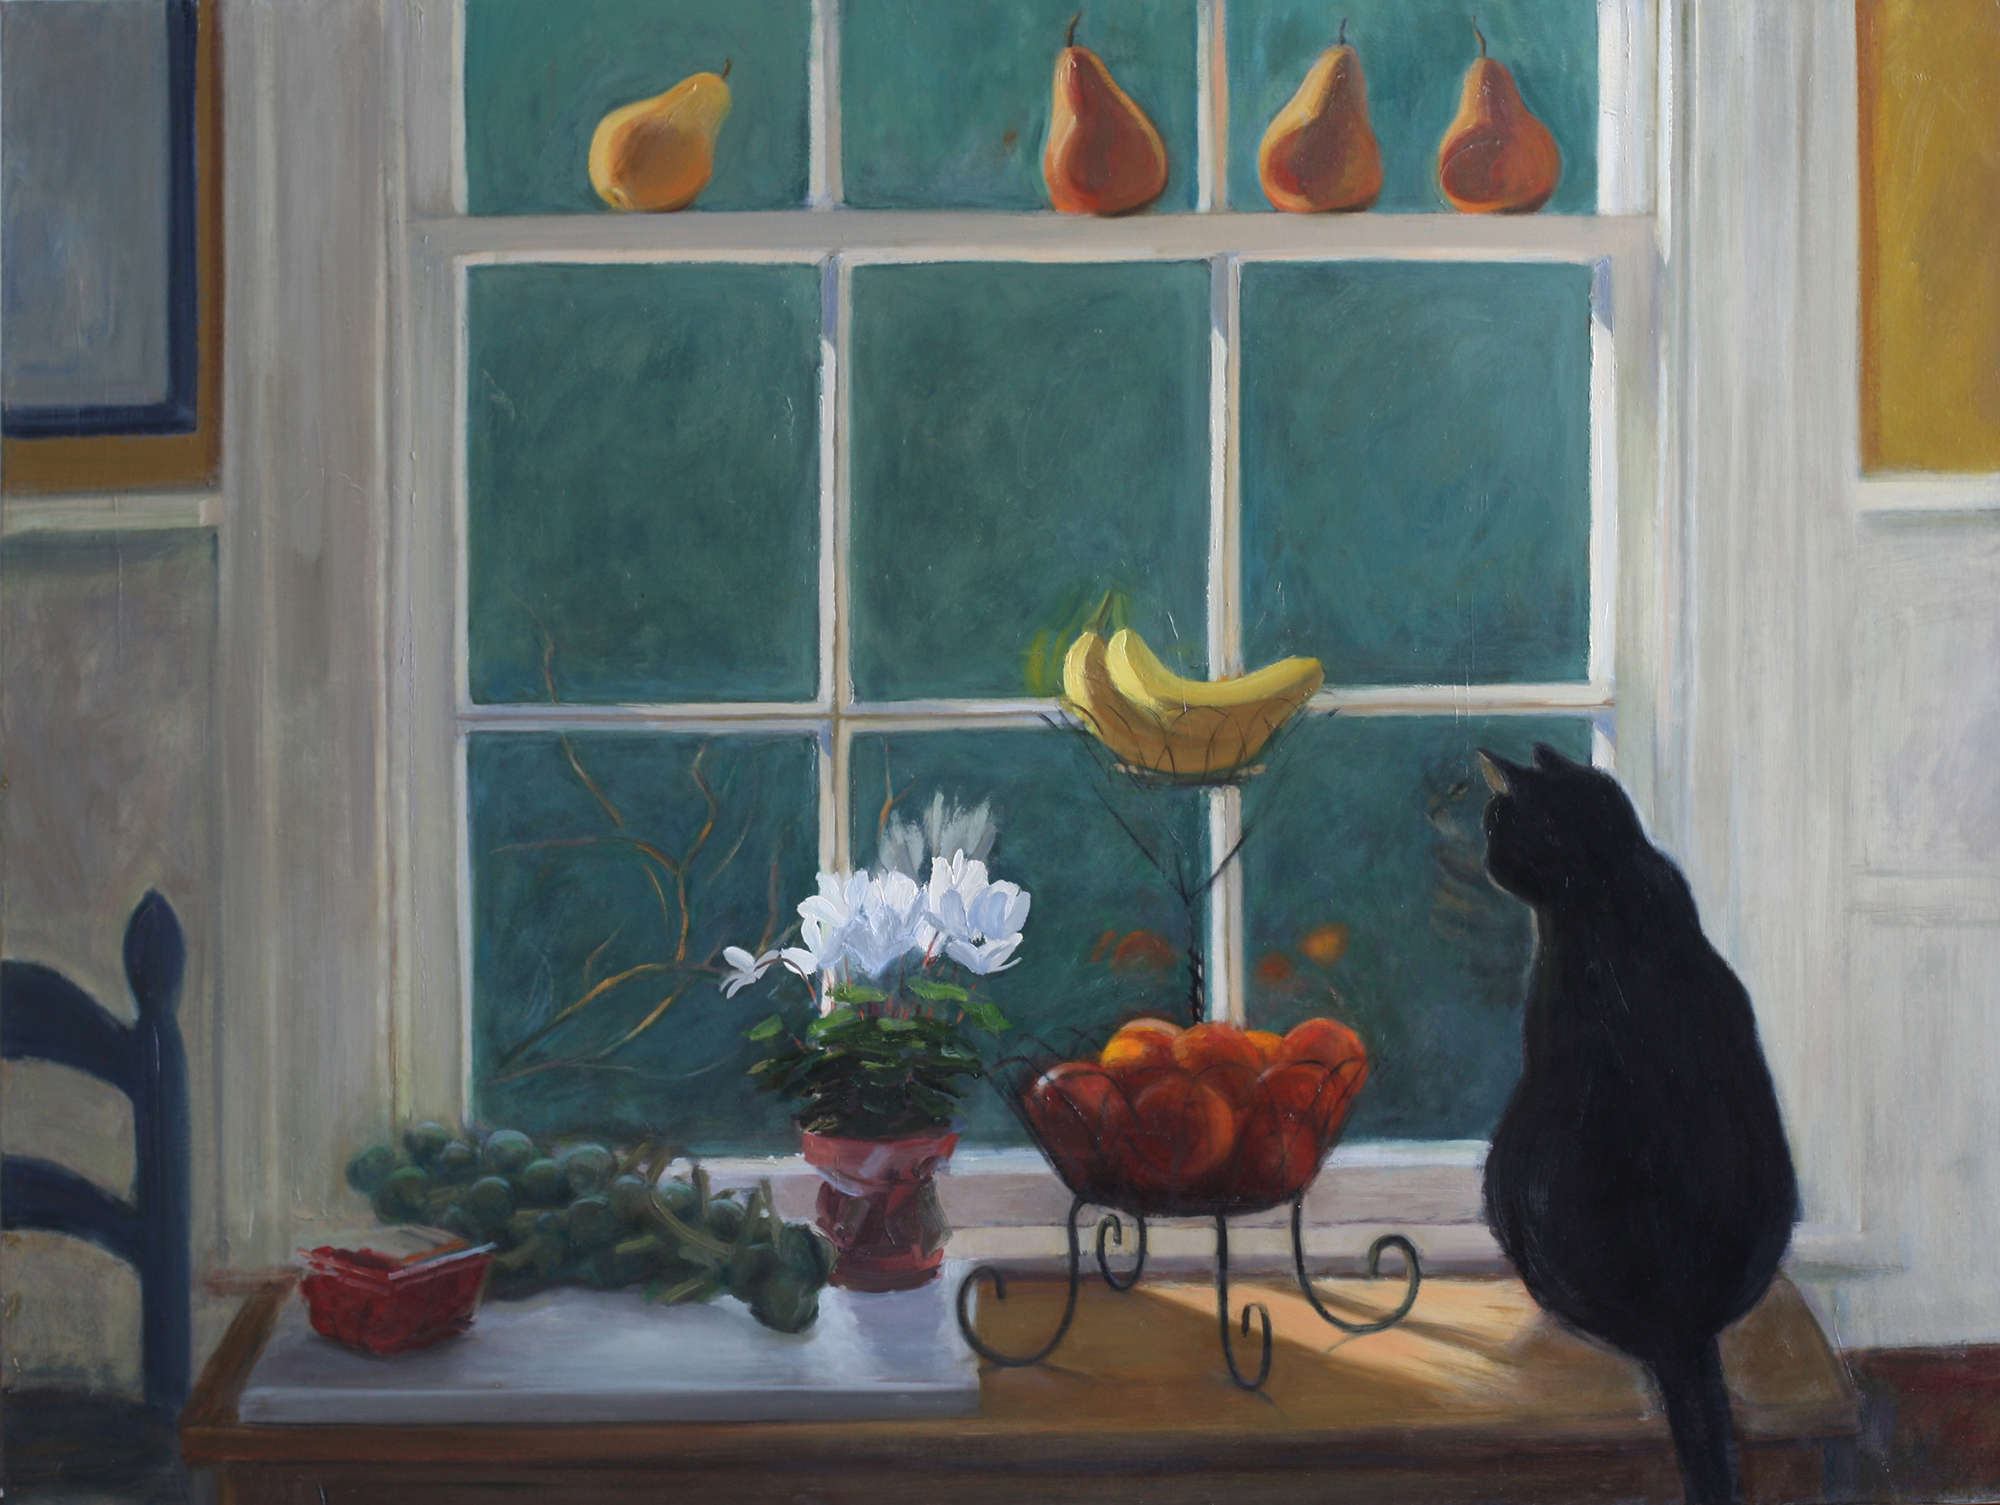 Oil painting of kitchen window with cat